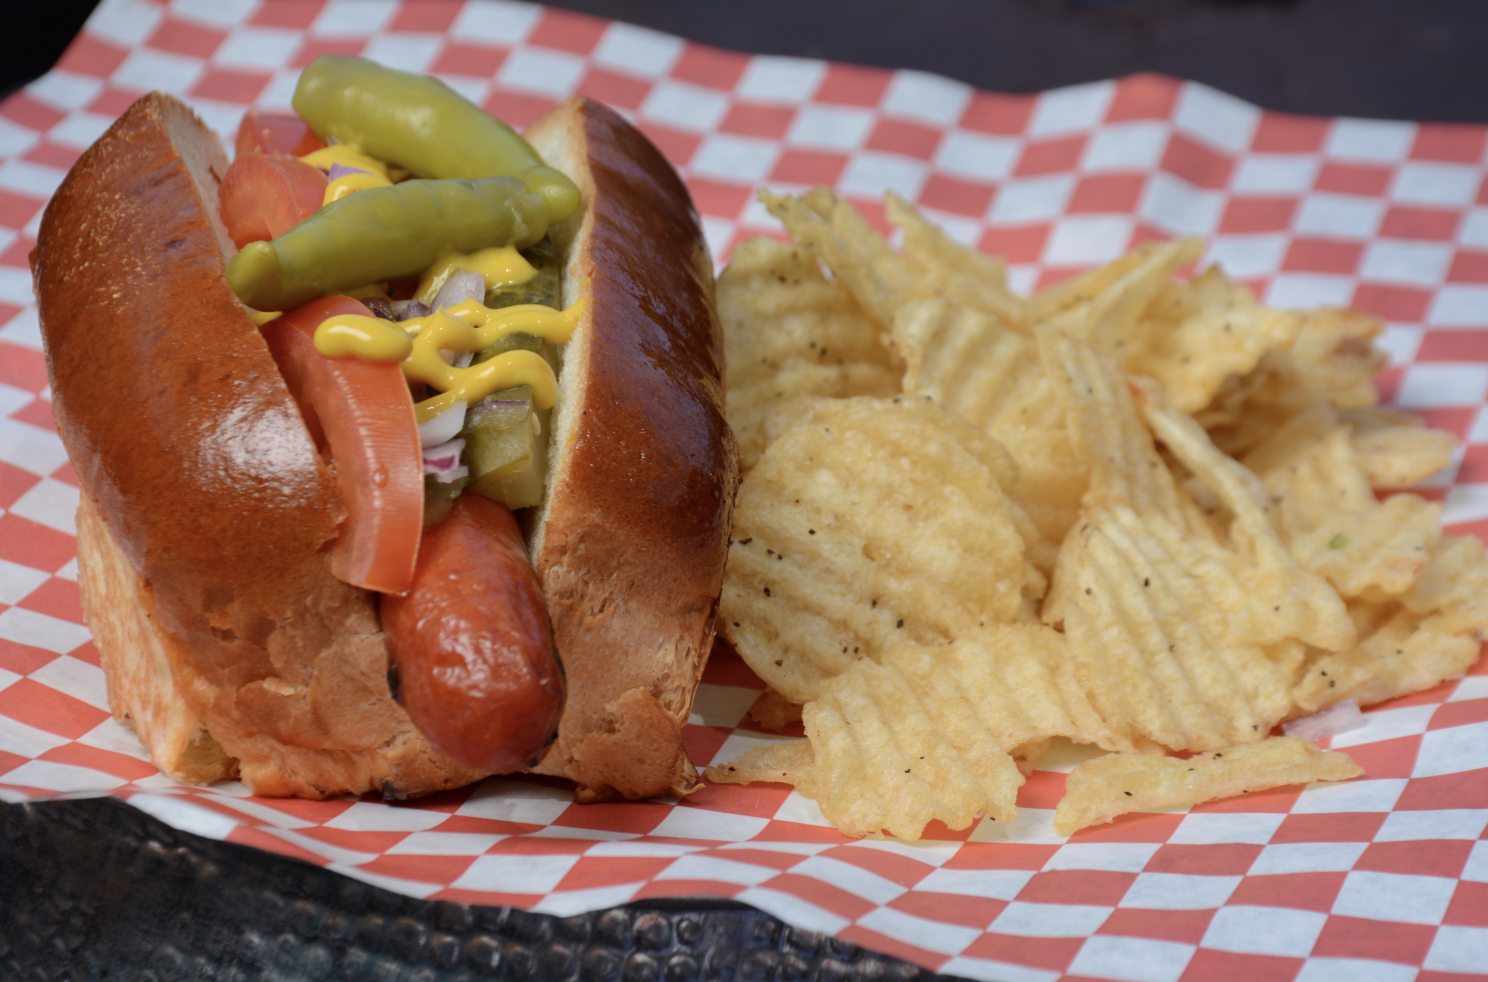 This delicious hotdog is far from basic!  Photo Credit:  acuna-hansen